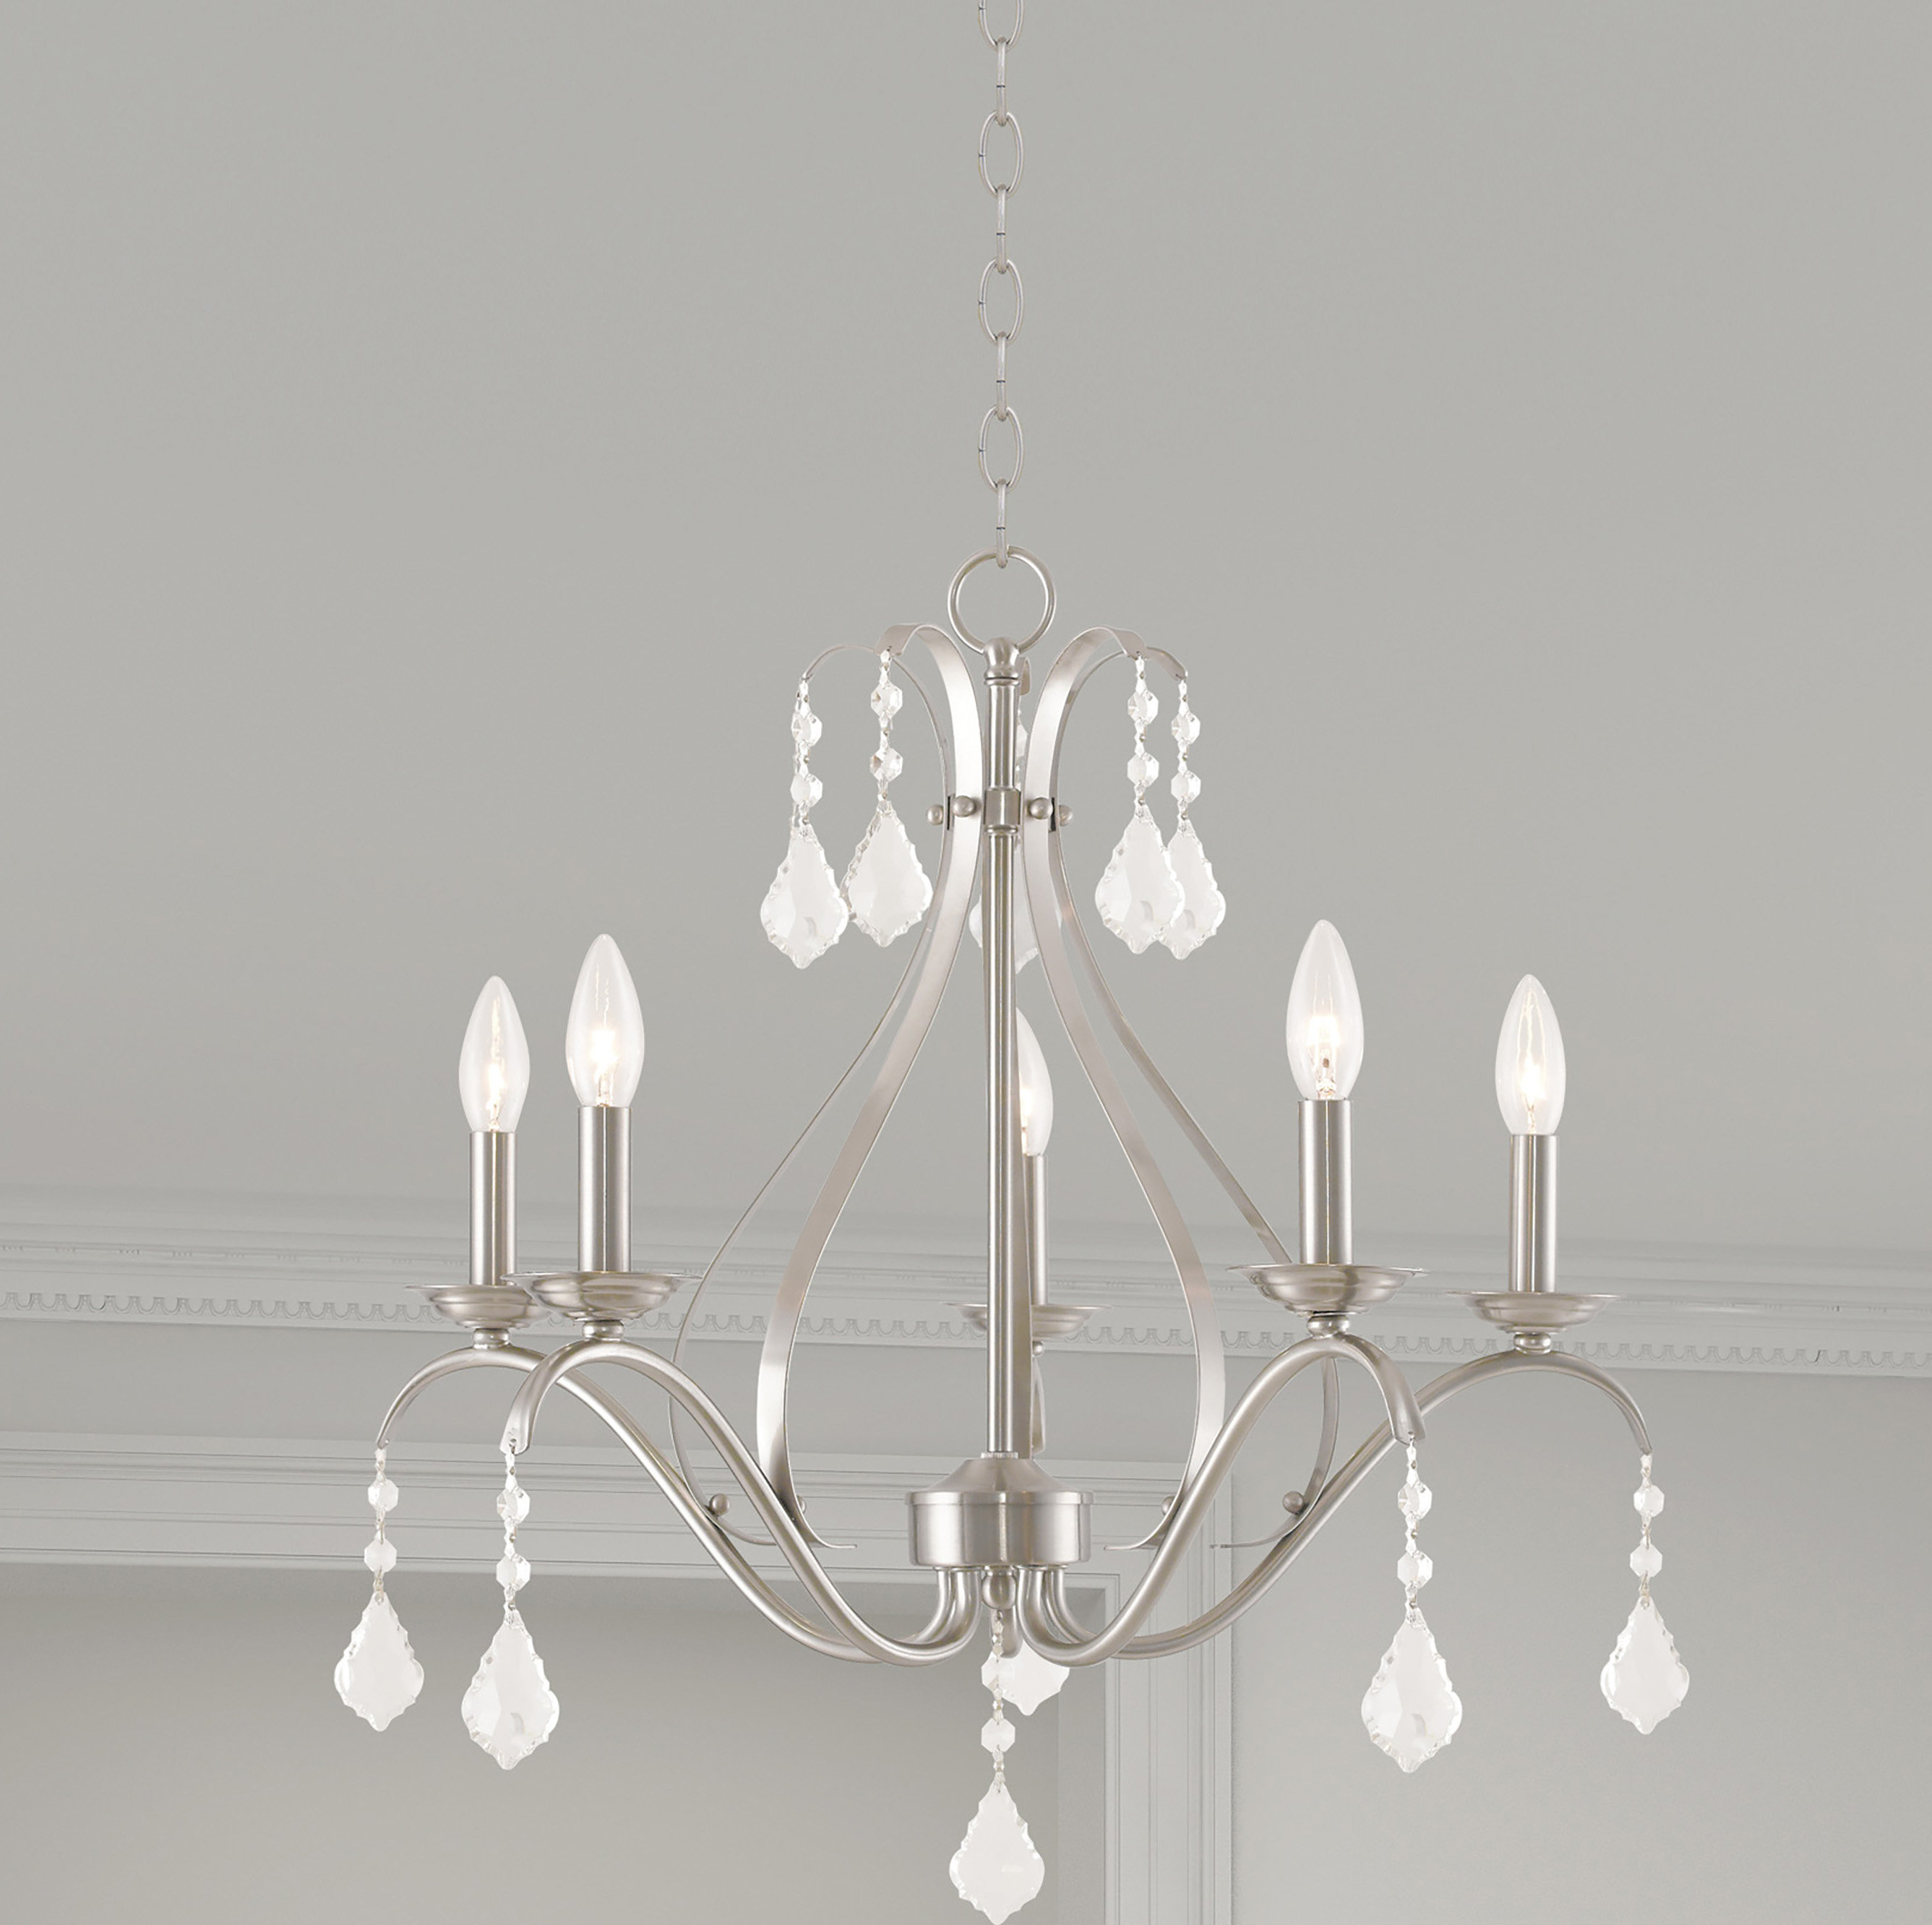 Berger 5-Light Candle Style Chandeliers with regard to Most Recently Released Aria 5-Light Candle Style Chandelier